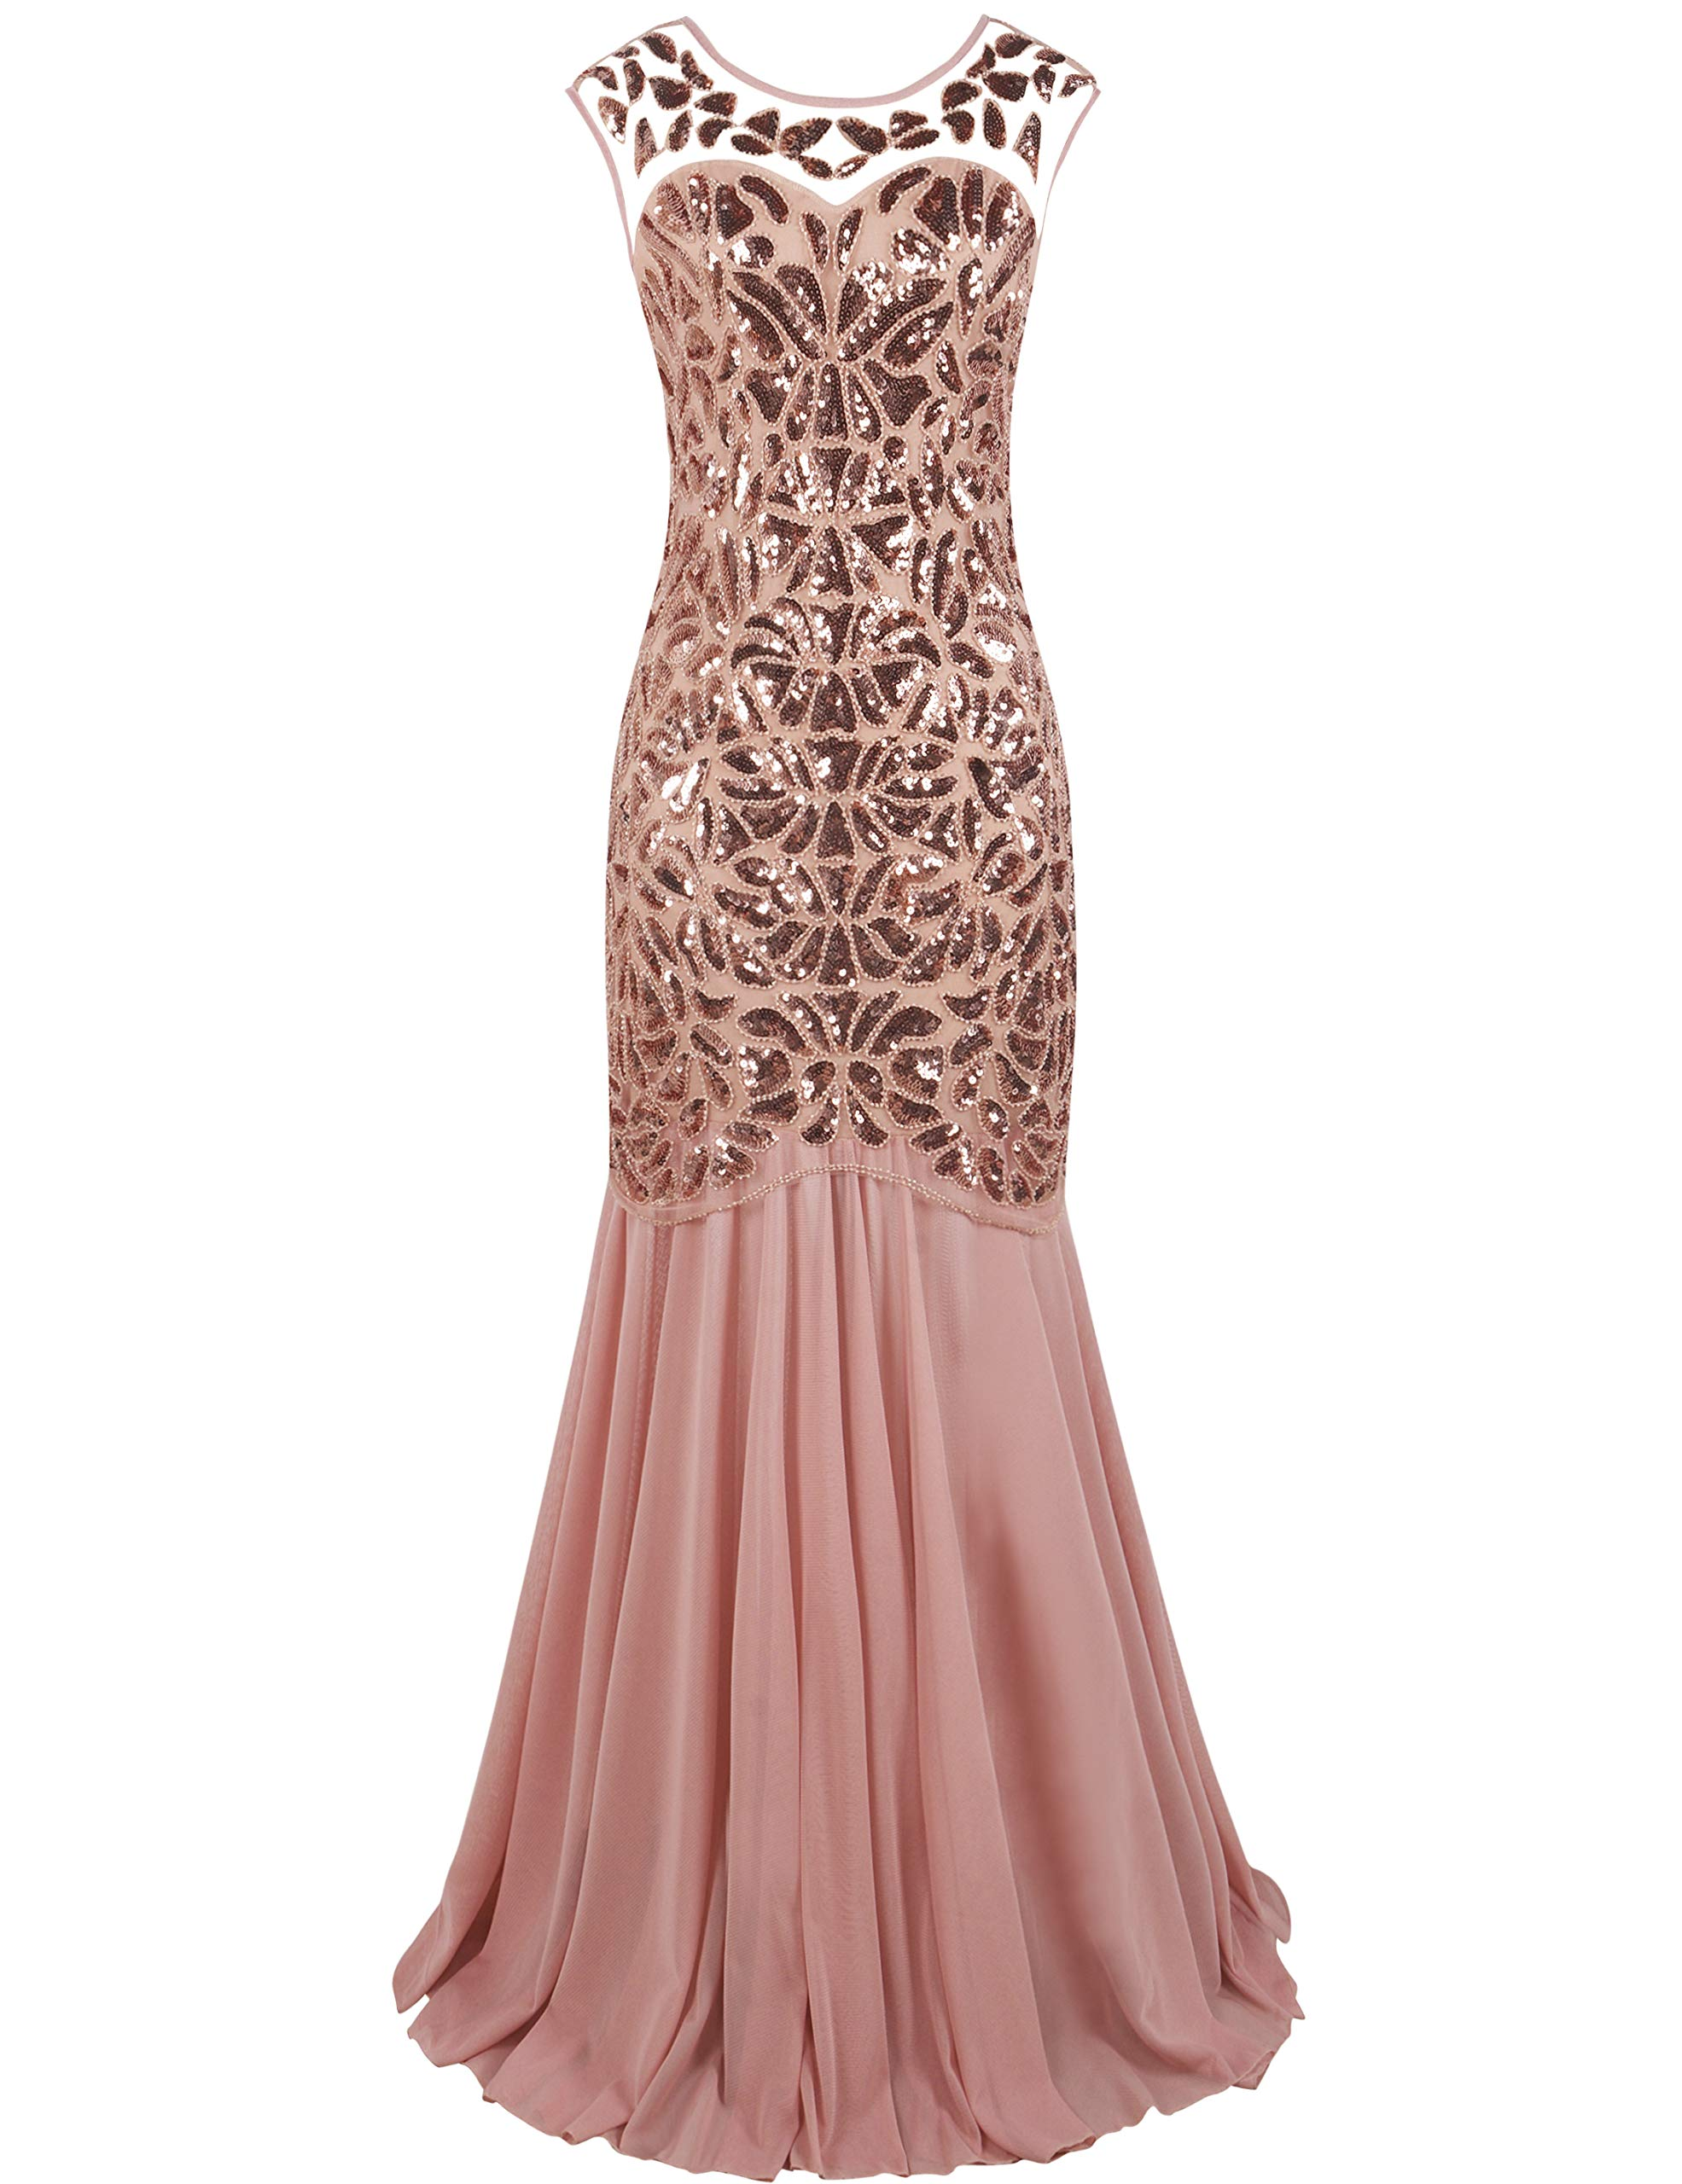 PrettyGuide Women 's 1920s Art Deco Sequin Gatsby Formal Evening Prom Dress L Pink by PrettyGuide